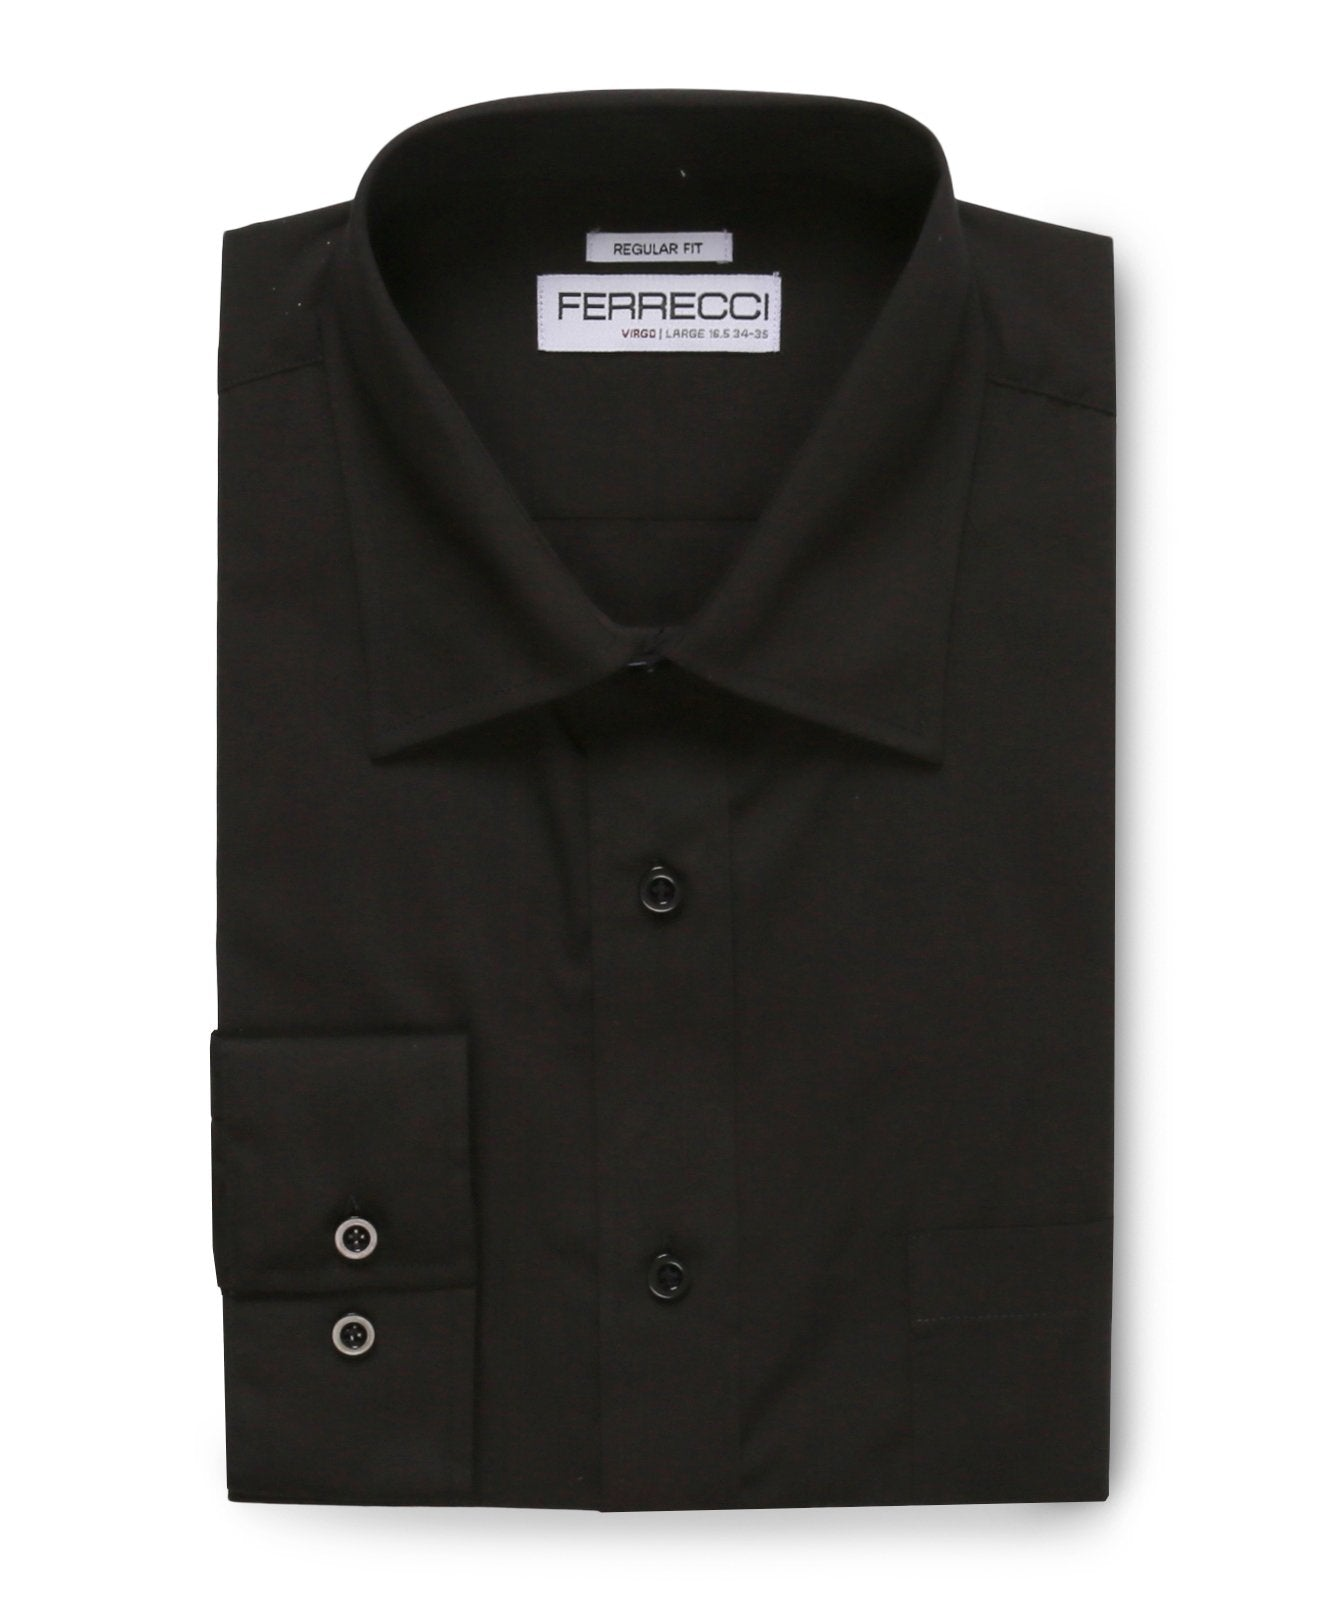 Virgo Black Regular Fit Dress Shirt - Giorgio's Menswear